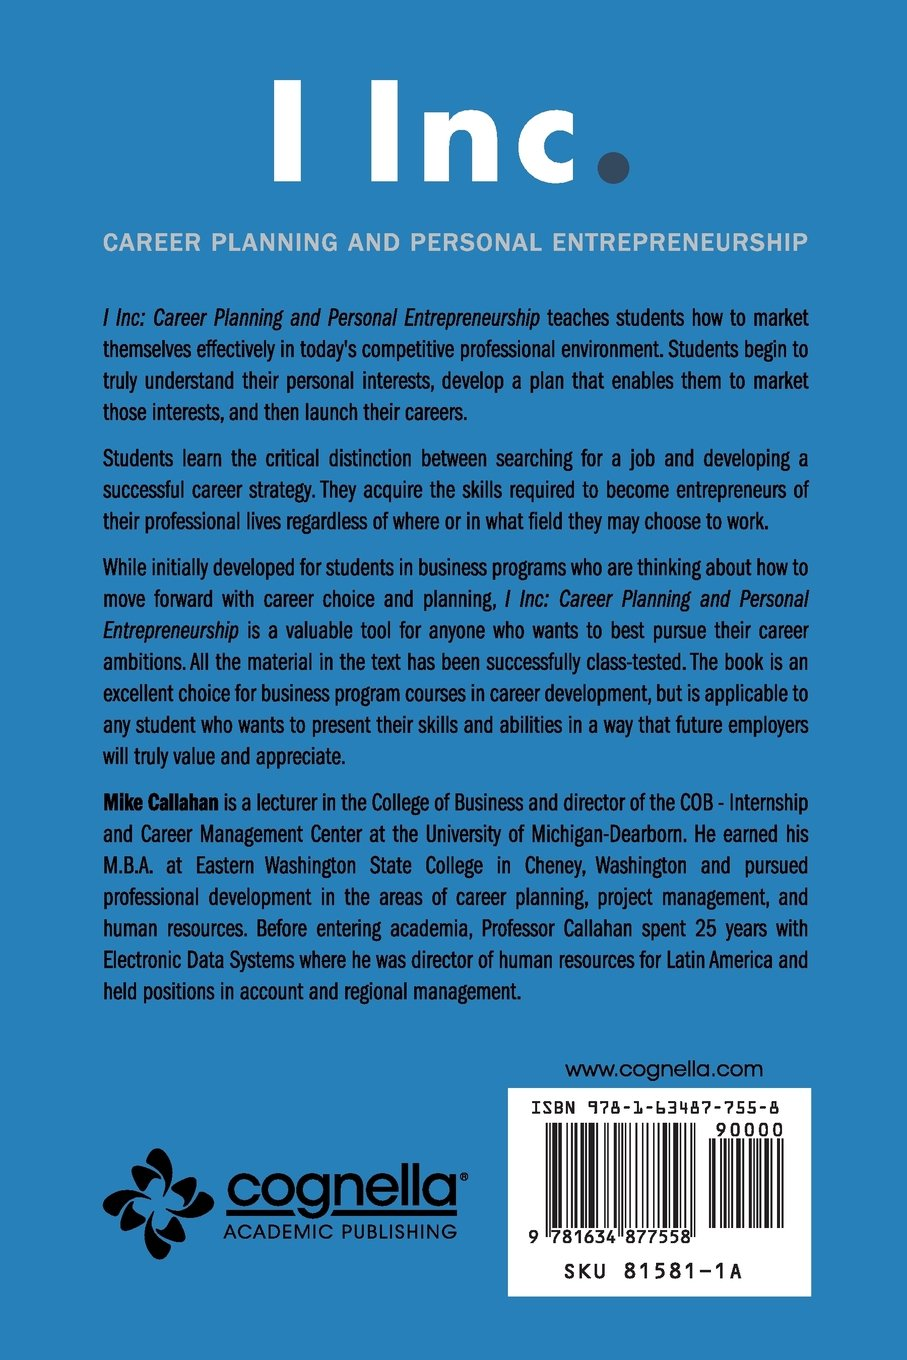 i inc career planning and personal entrepreneurship mike i inc career planning and personal entrepreneurship mike callahan 9781634877558 amazon com books